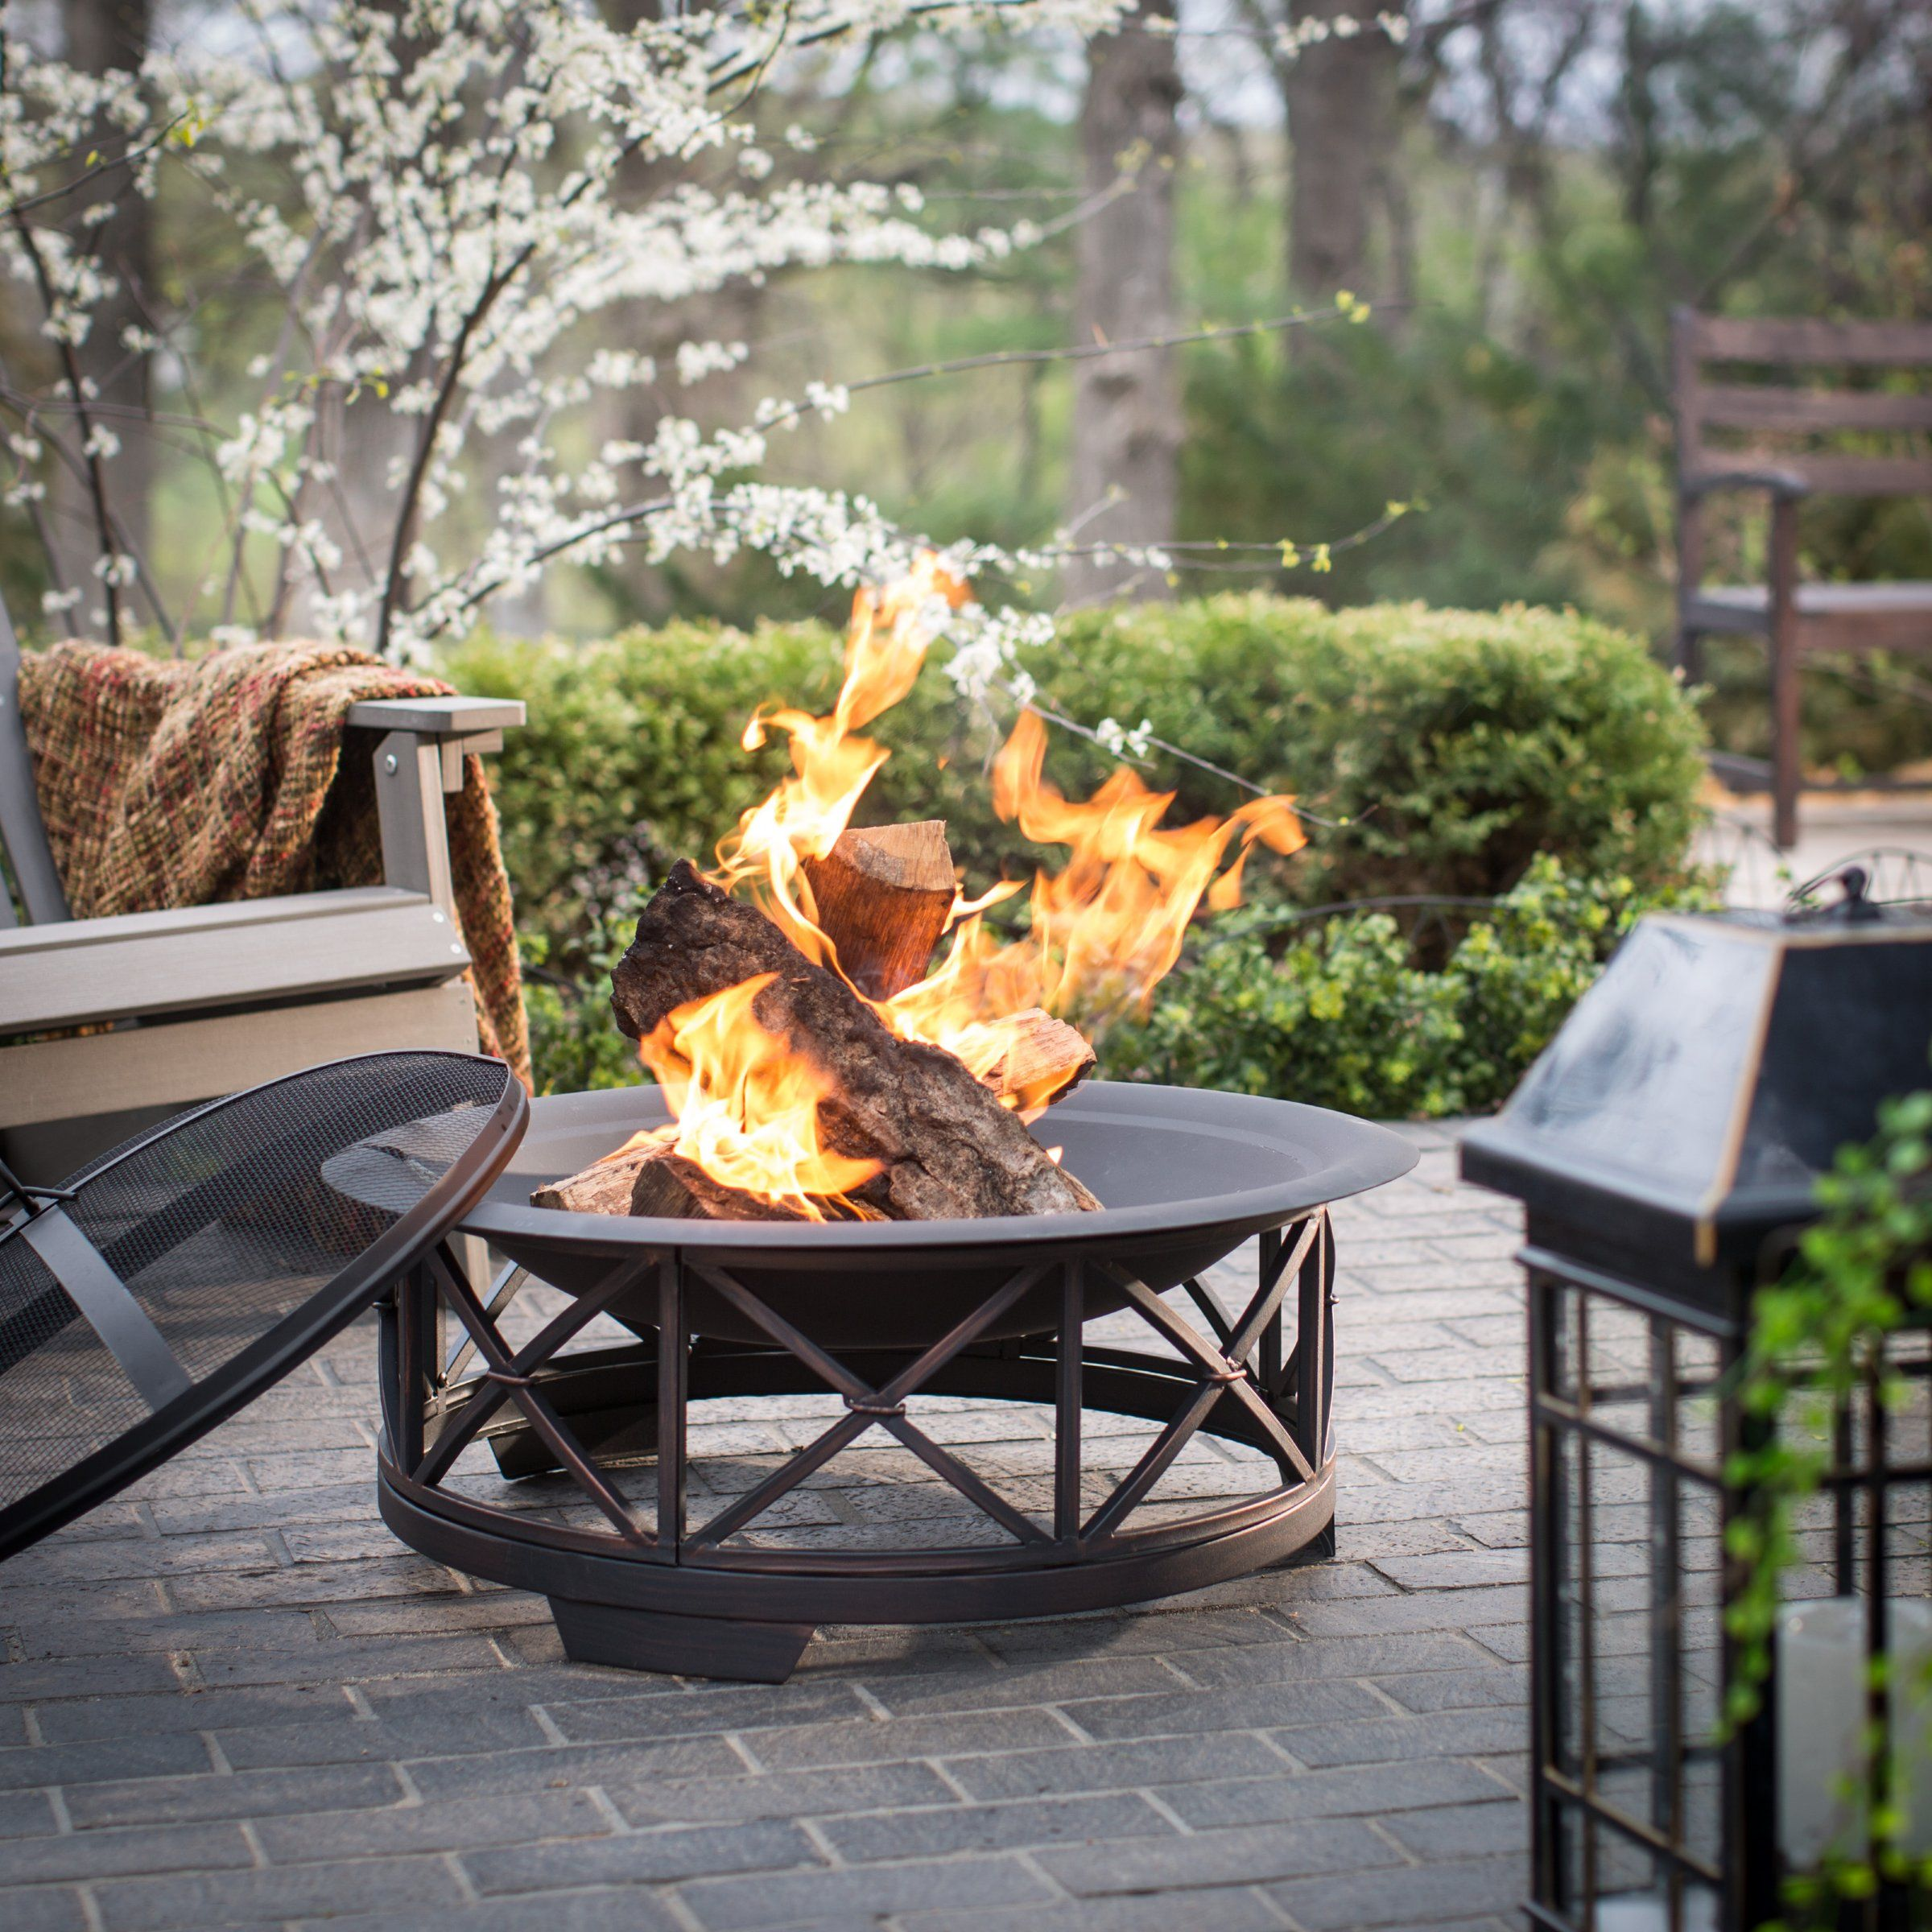 a0ac806459a38dd1667102ef3bb0ca04 Top Result 50 Awesome Gas Fire Pit Under Covered Patio Pic 2018 Shdy7